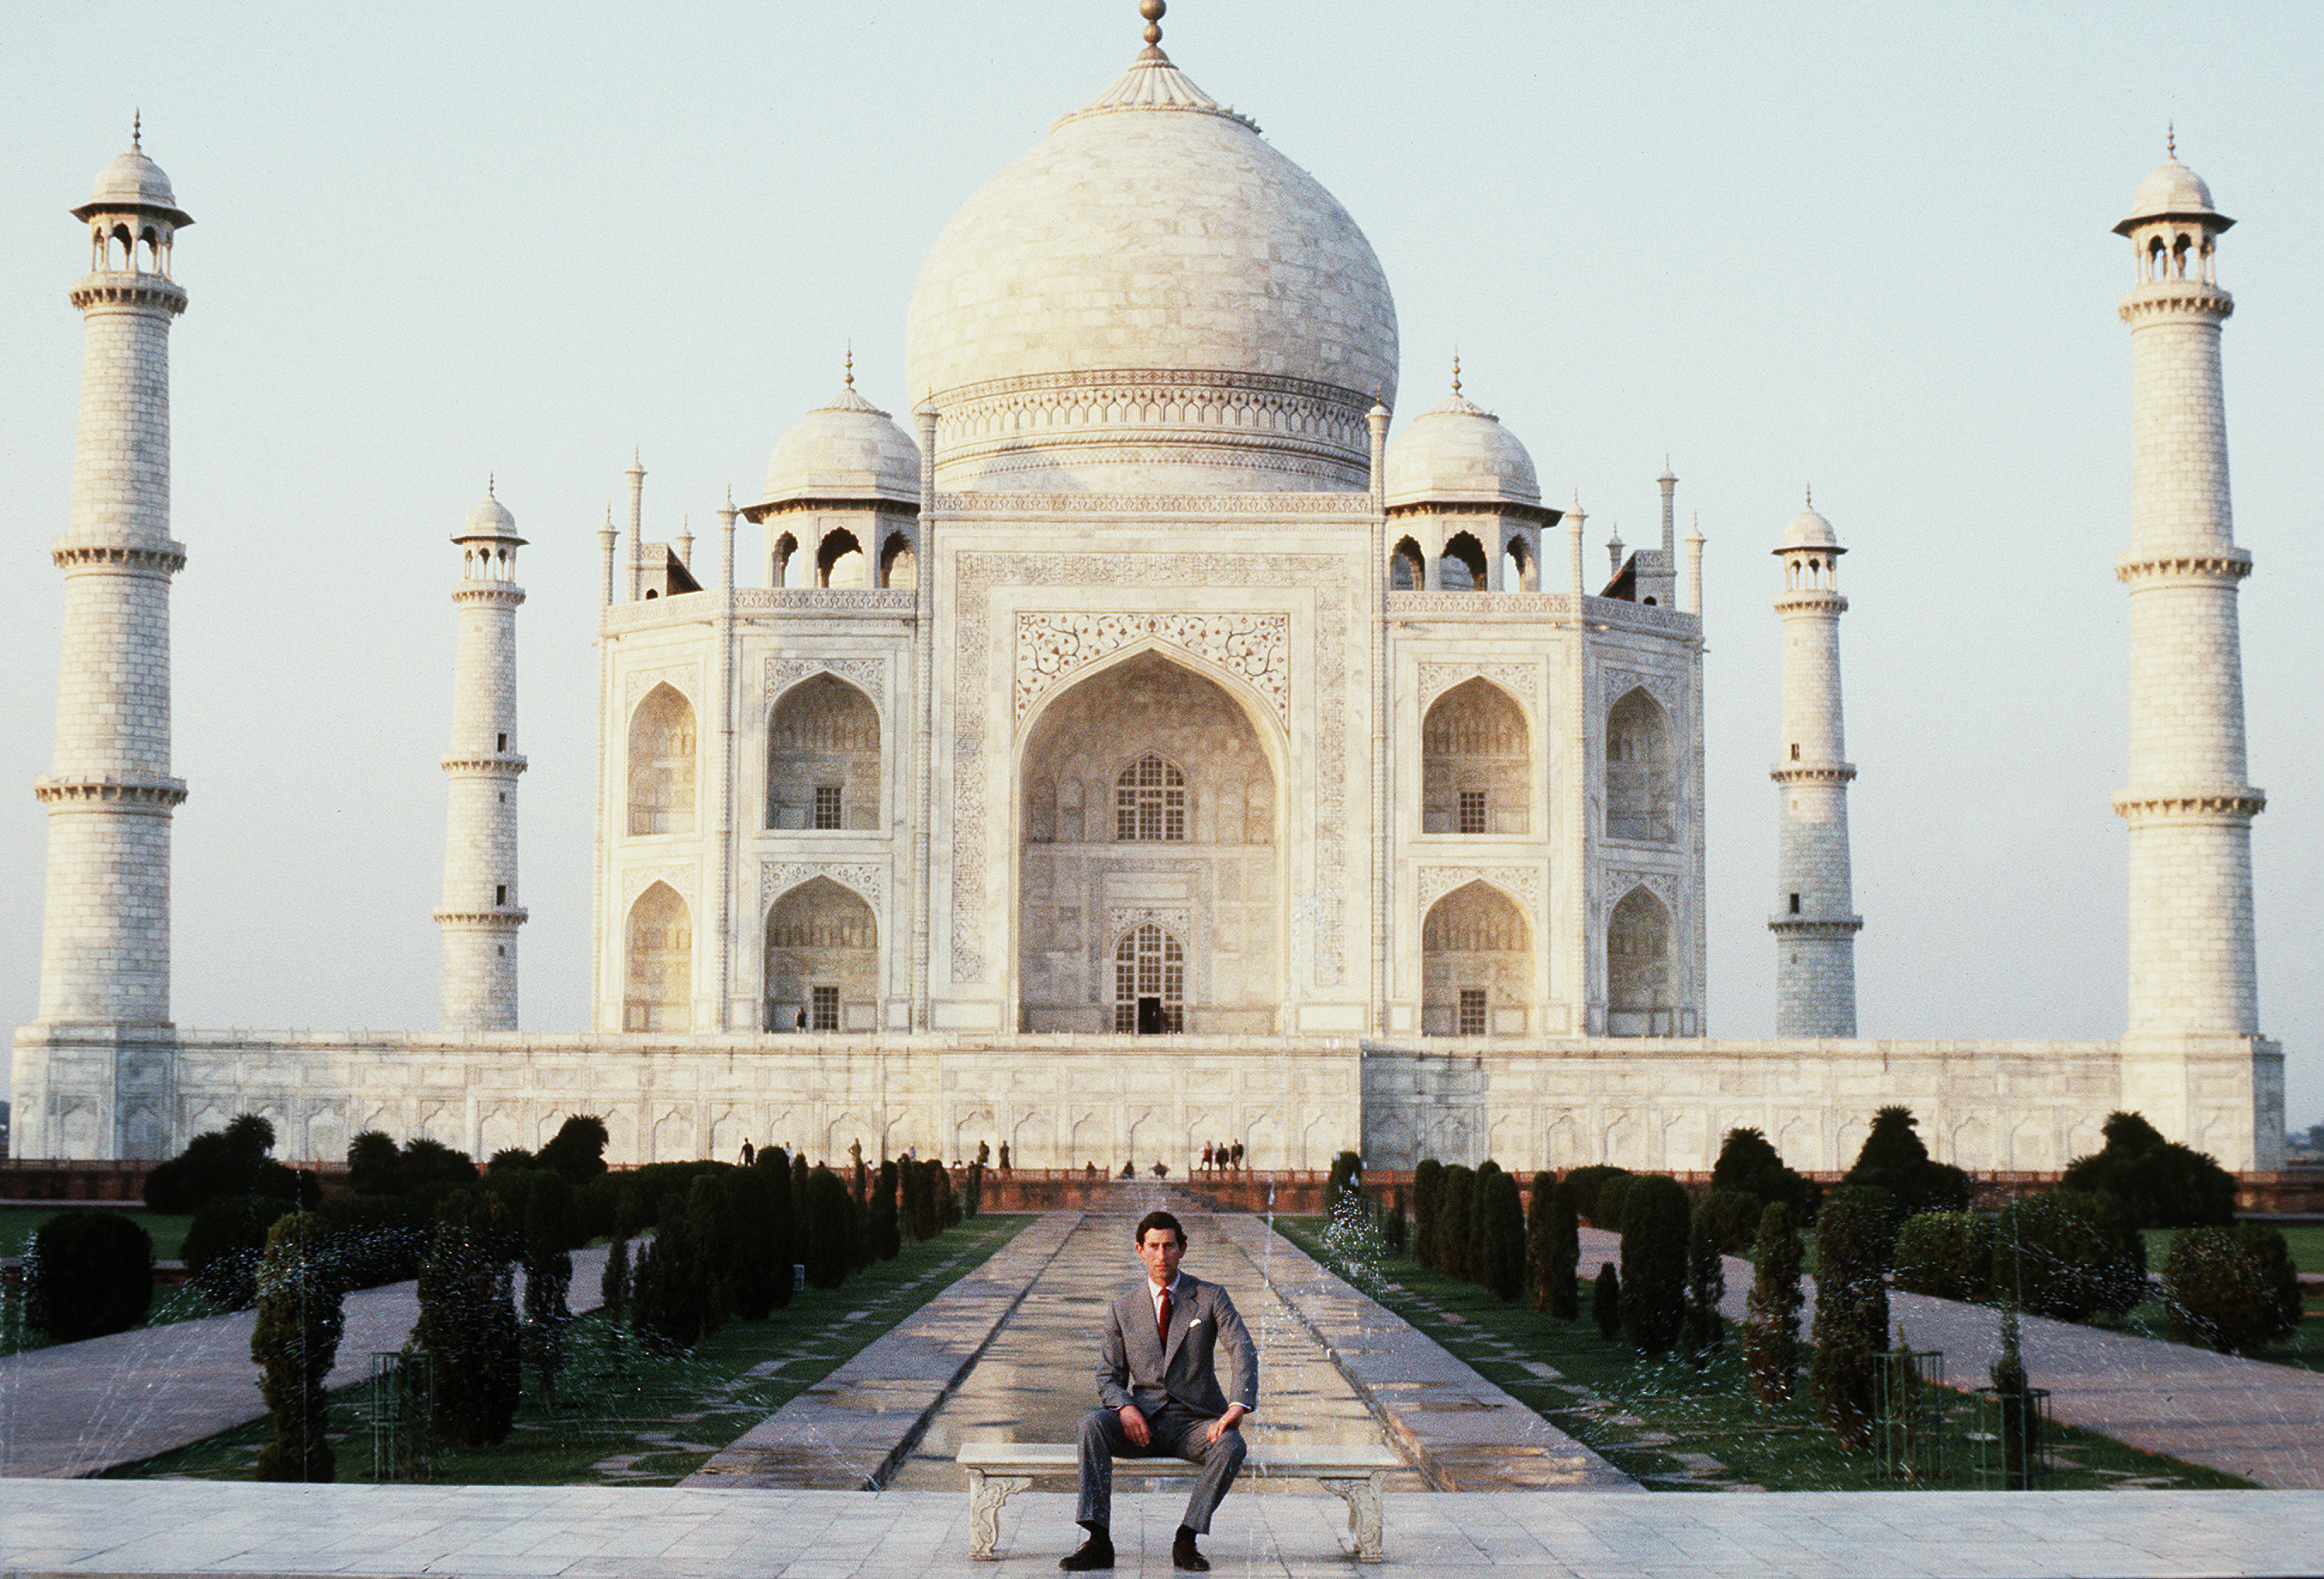 <b> Prince Charles, Prince of Wales poses outside the Taj Mahal during his visit to India in 1980. </b>